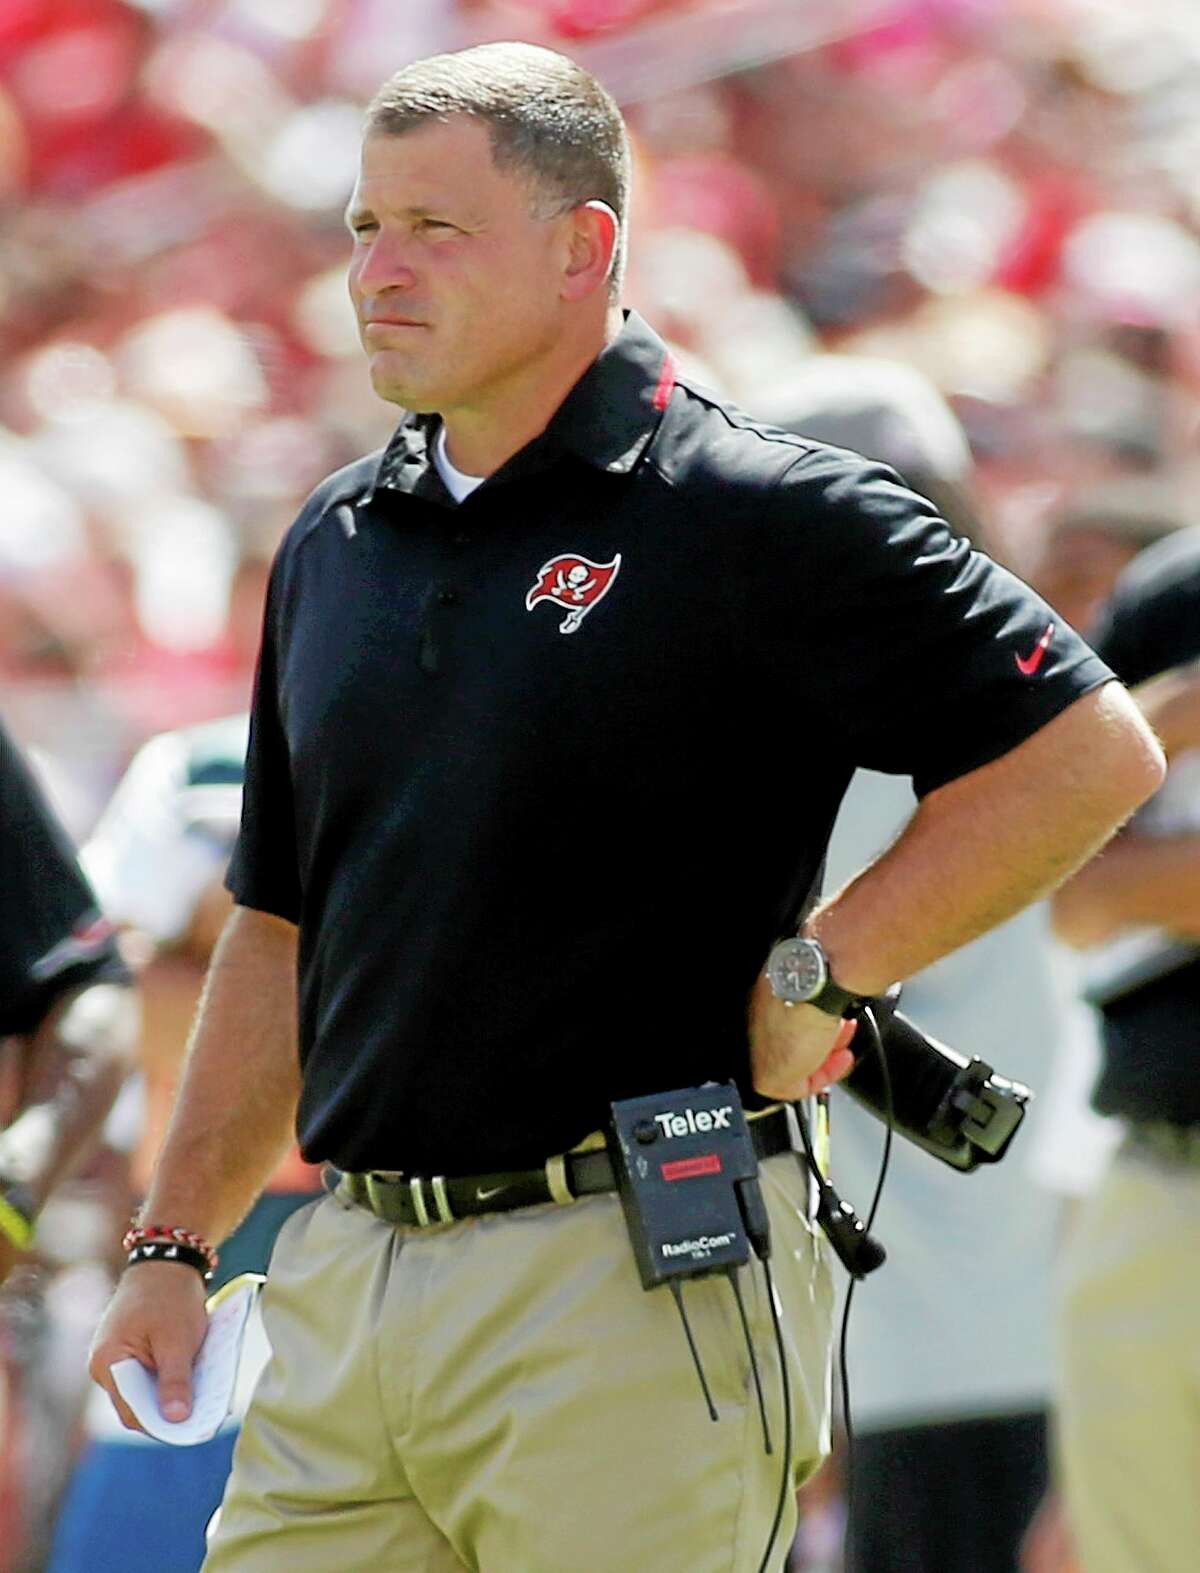 Head coach Greg Schiano and the Tampa Bay Buccaneers are dealing with the third case of MRSA to hit their team since August.